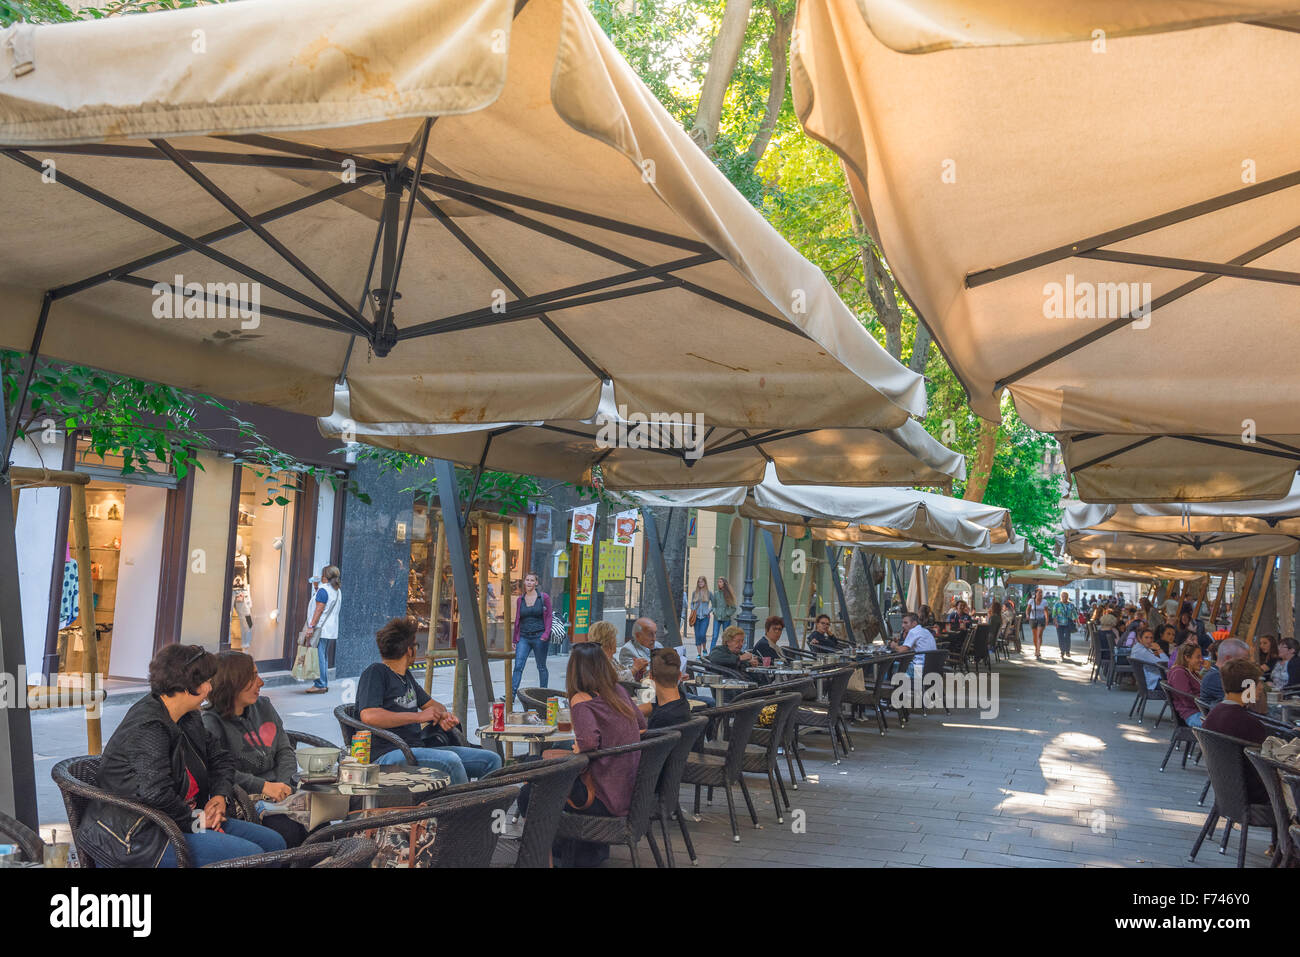 The Viale XX Settembre in the centre of Trieste, Italy, is a 200 metre long boulevard full of cafes and bars. - Stock Image